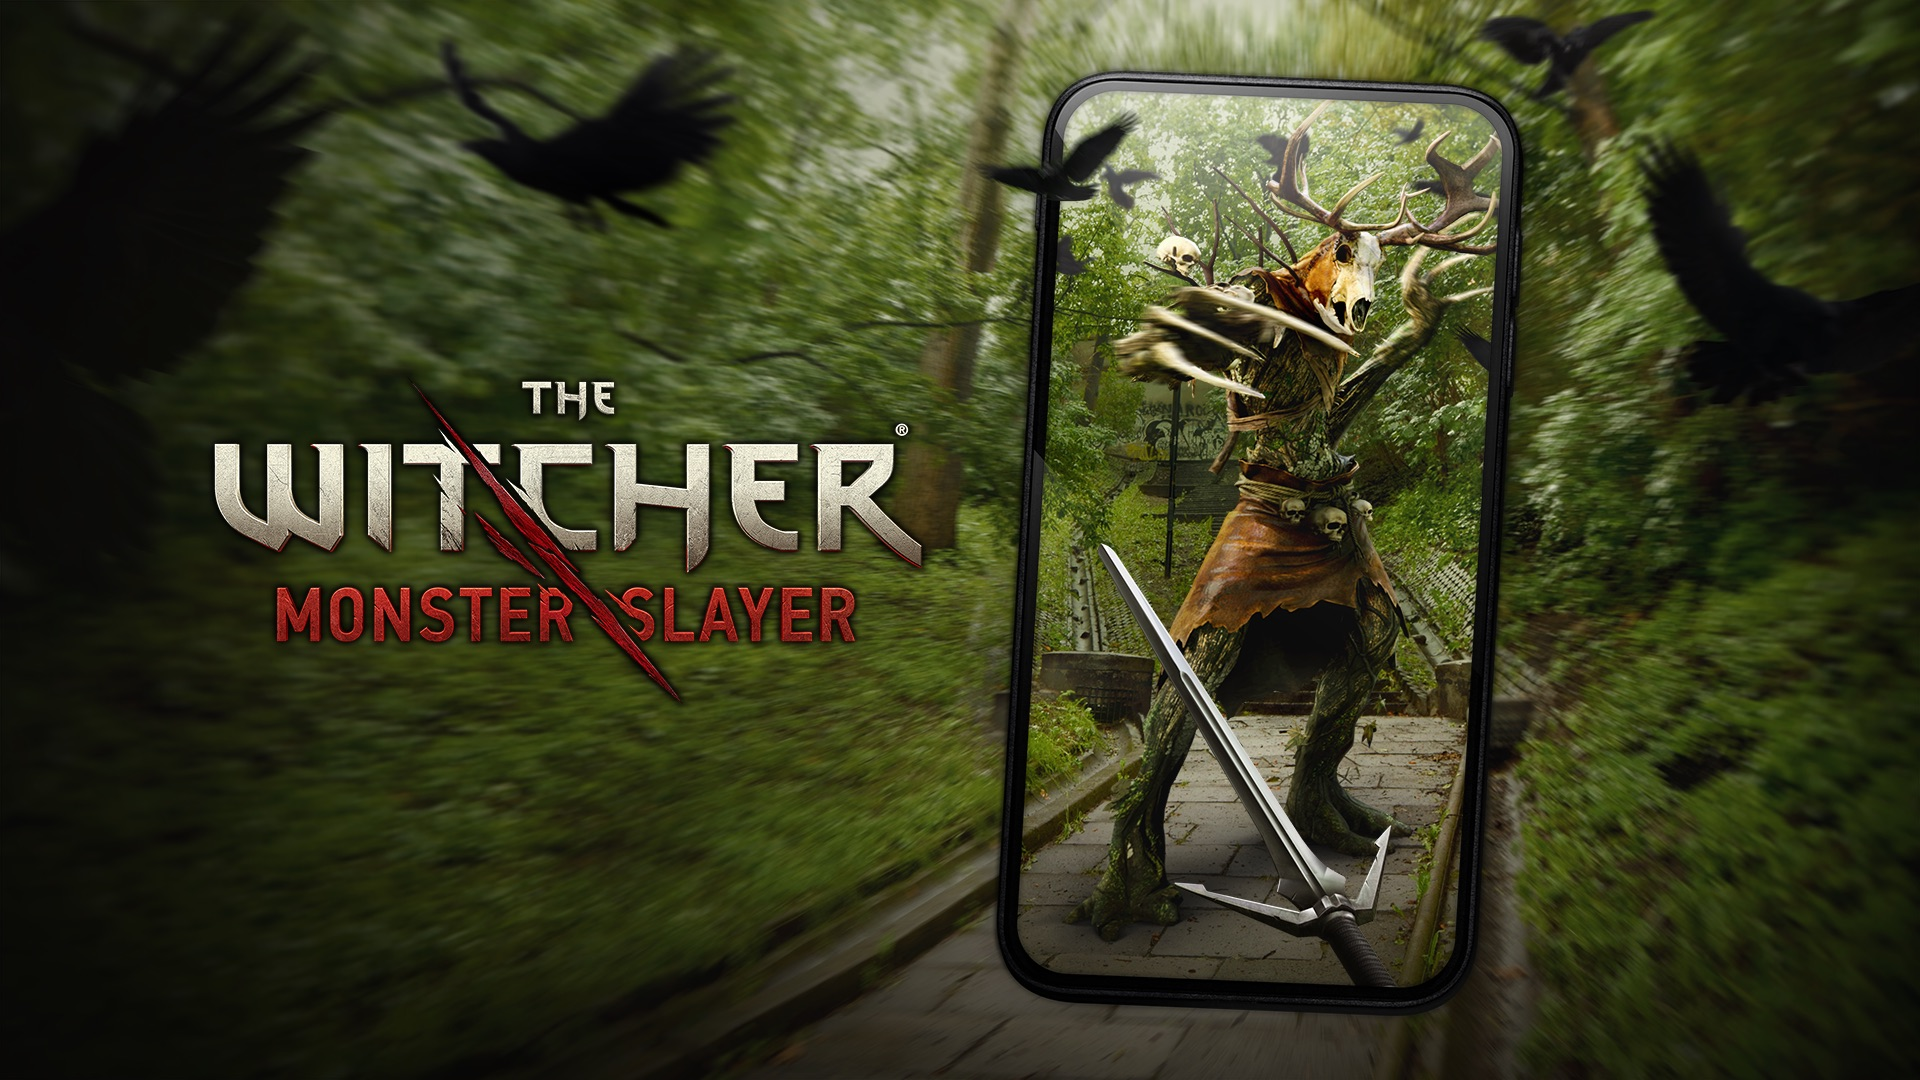 Artwork From The Witcher Monster Slayer AR Game